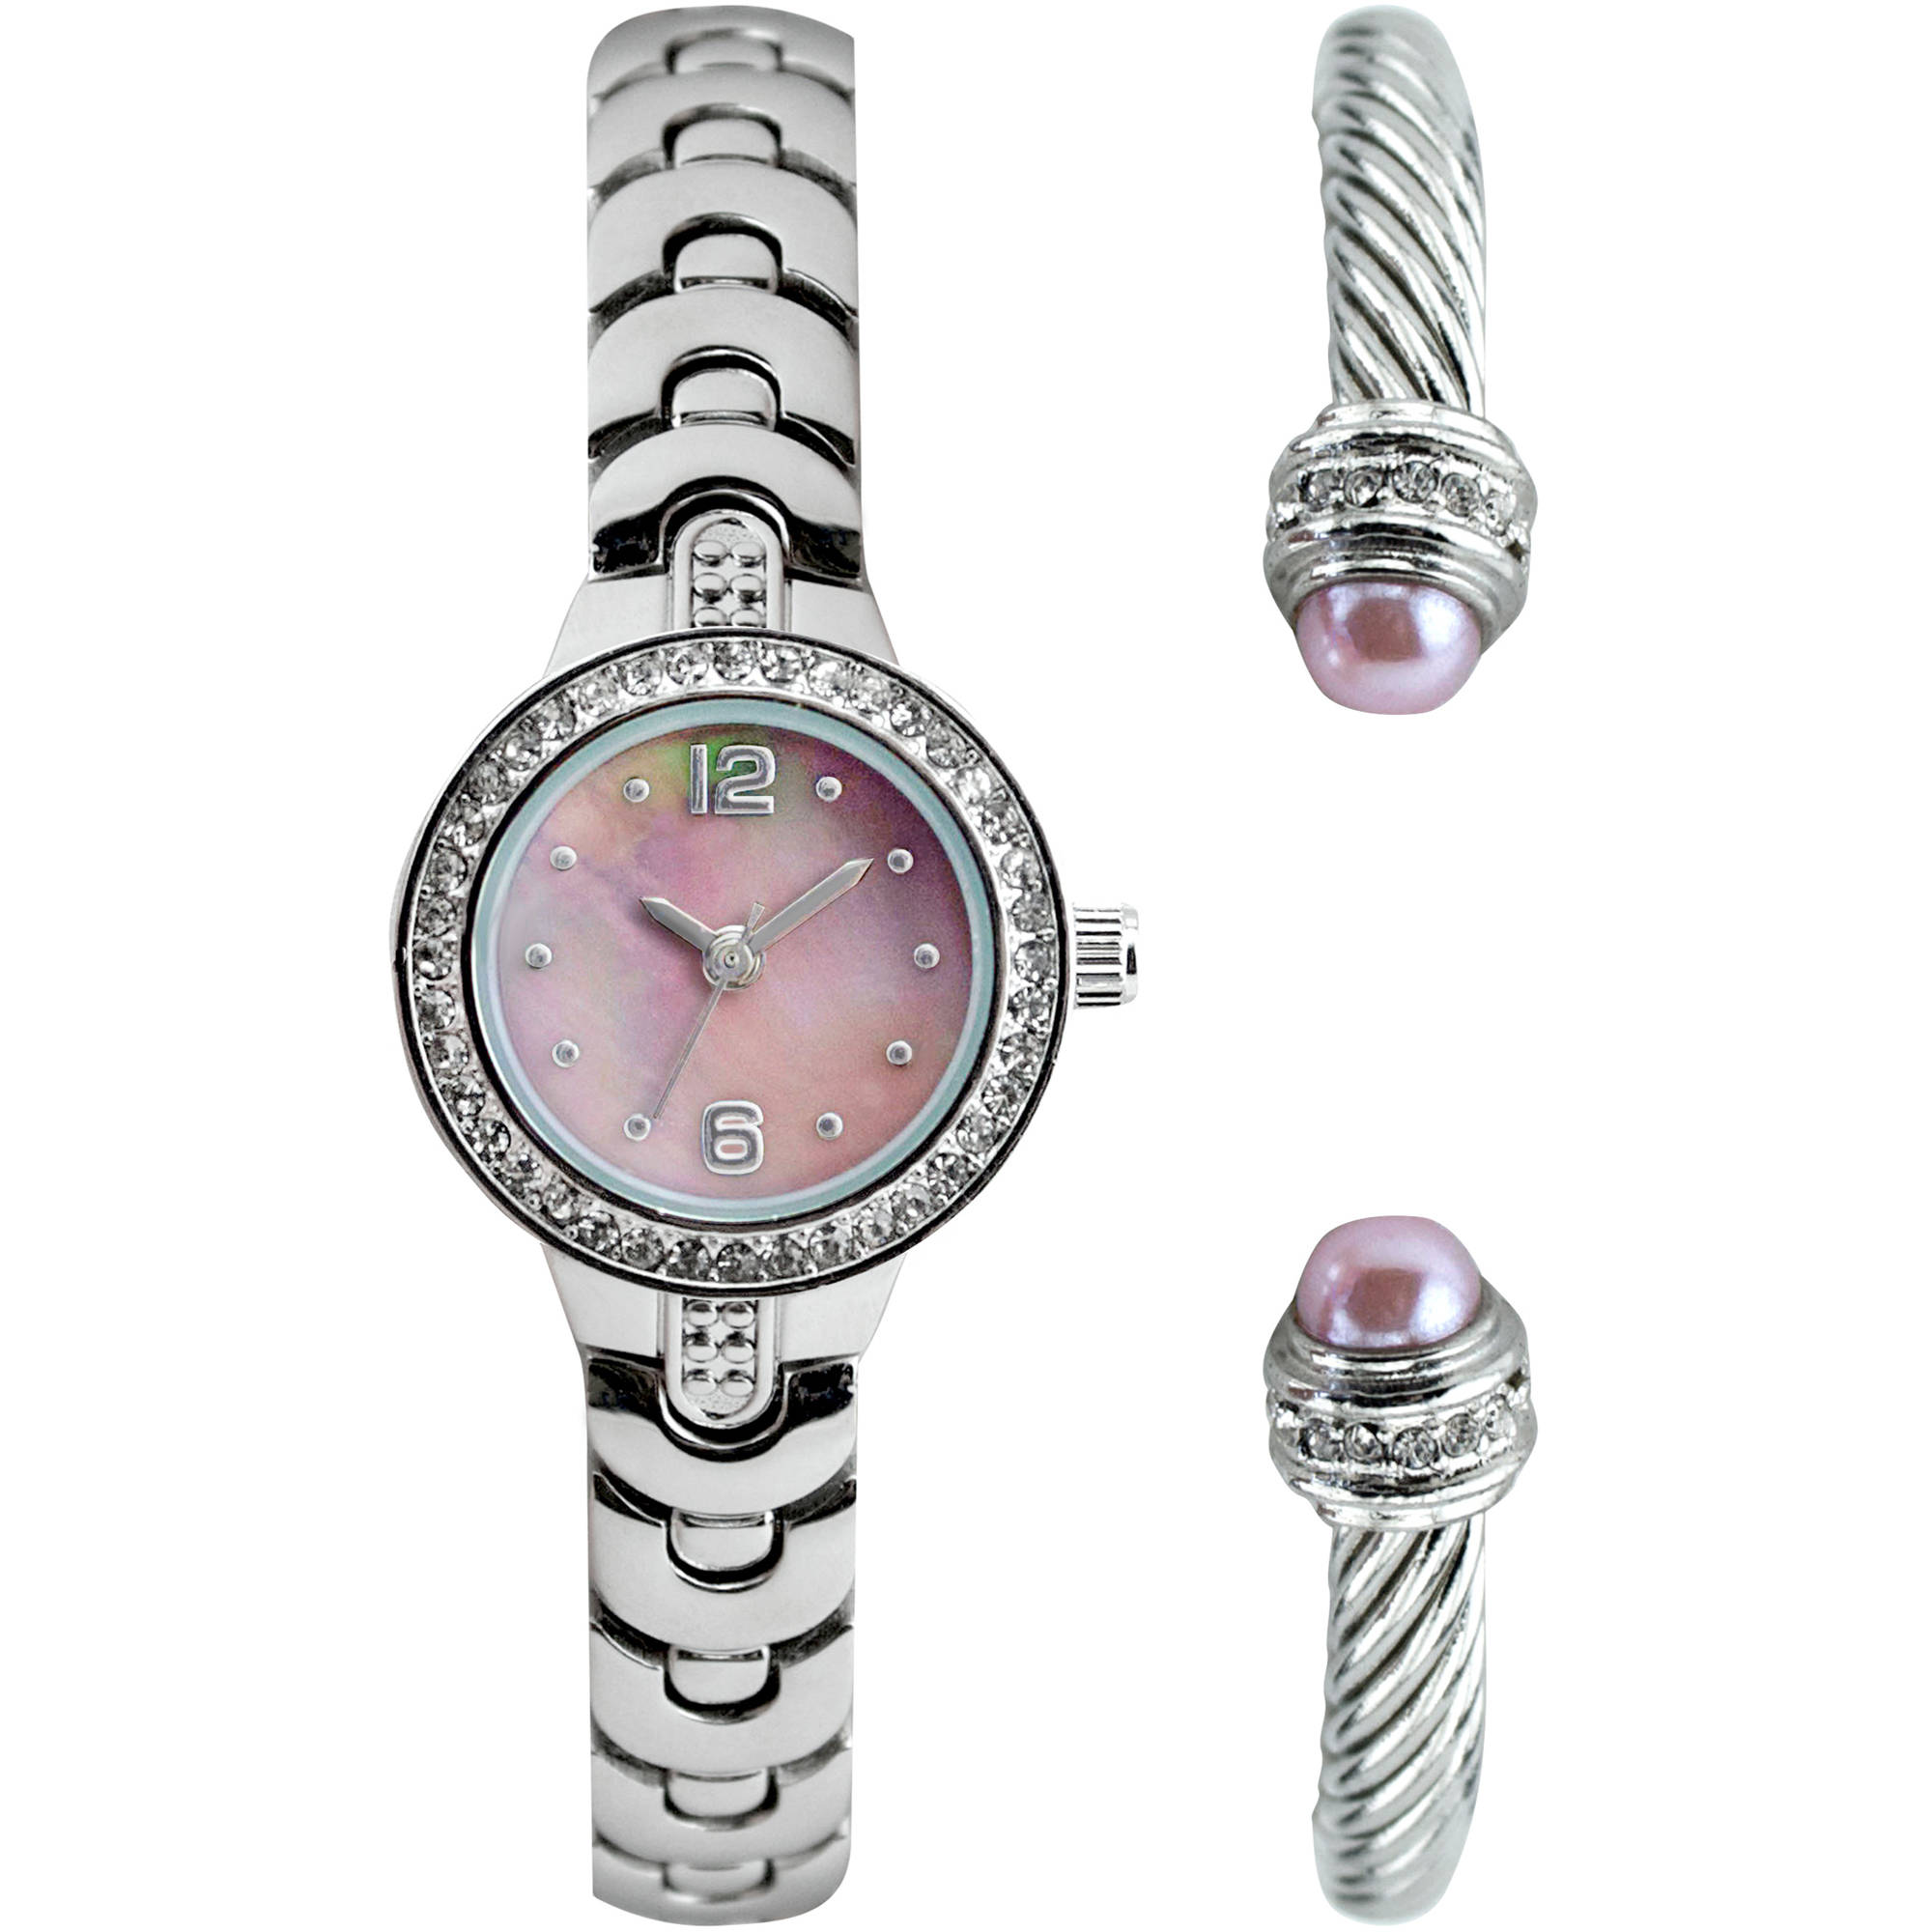 Women's Silver-Tone with Pink MOP Dial Watch Set with Bangle Bracelet